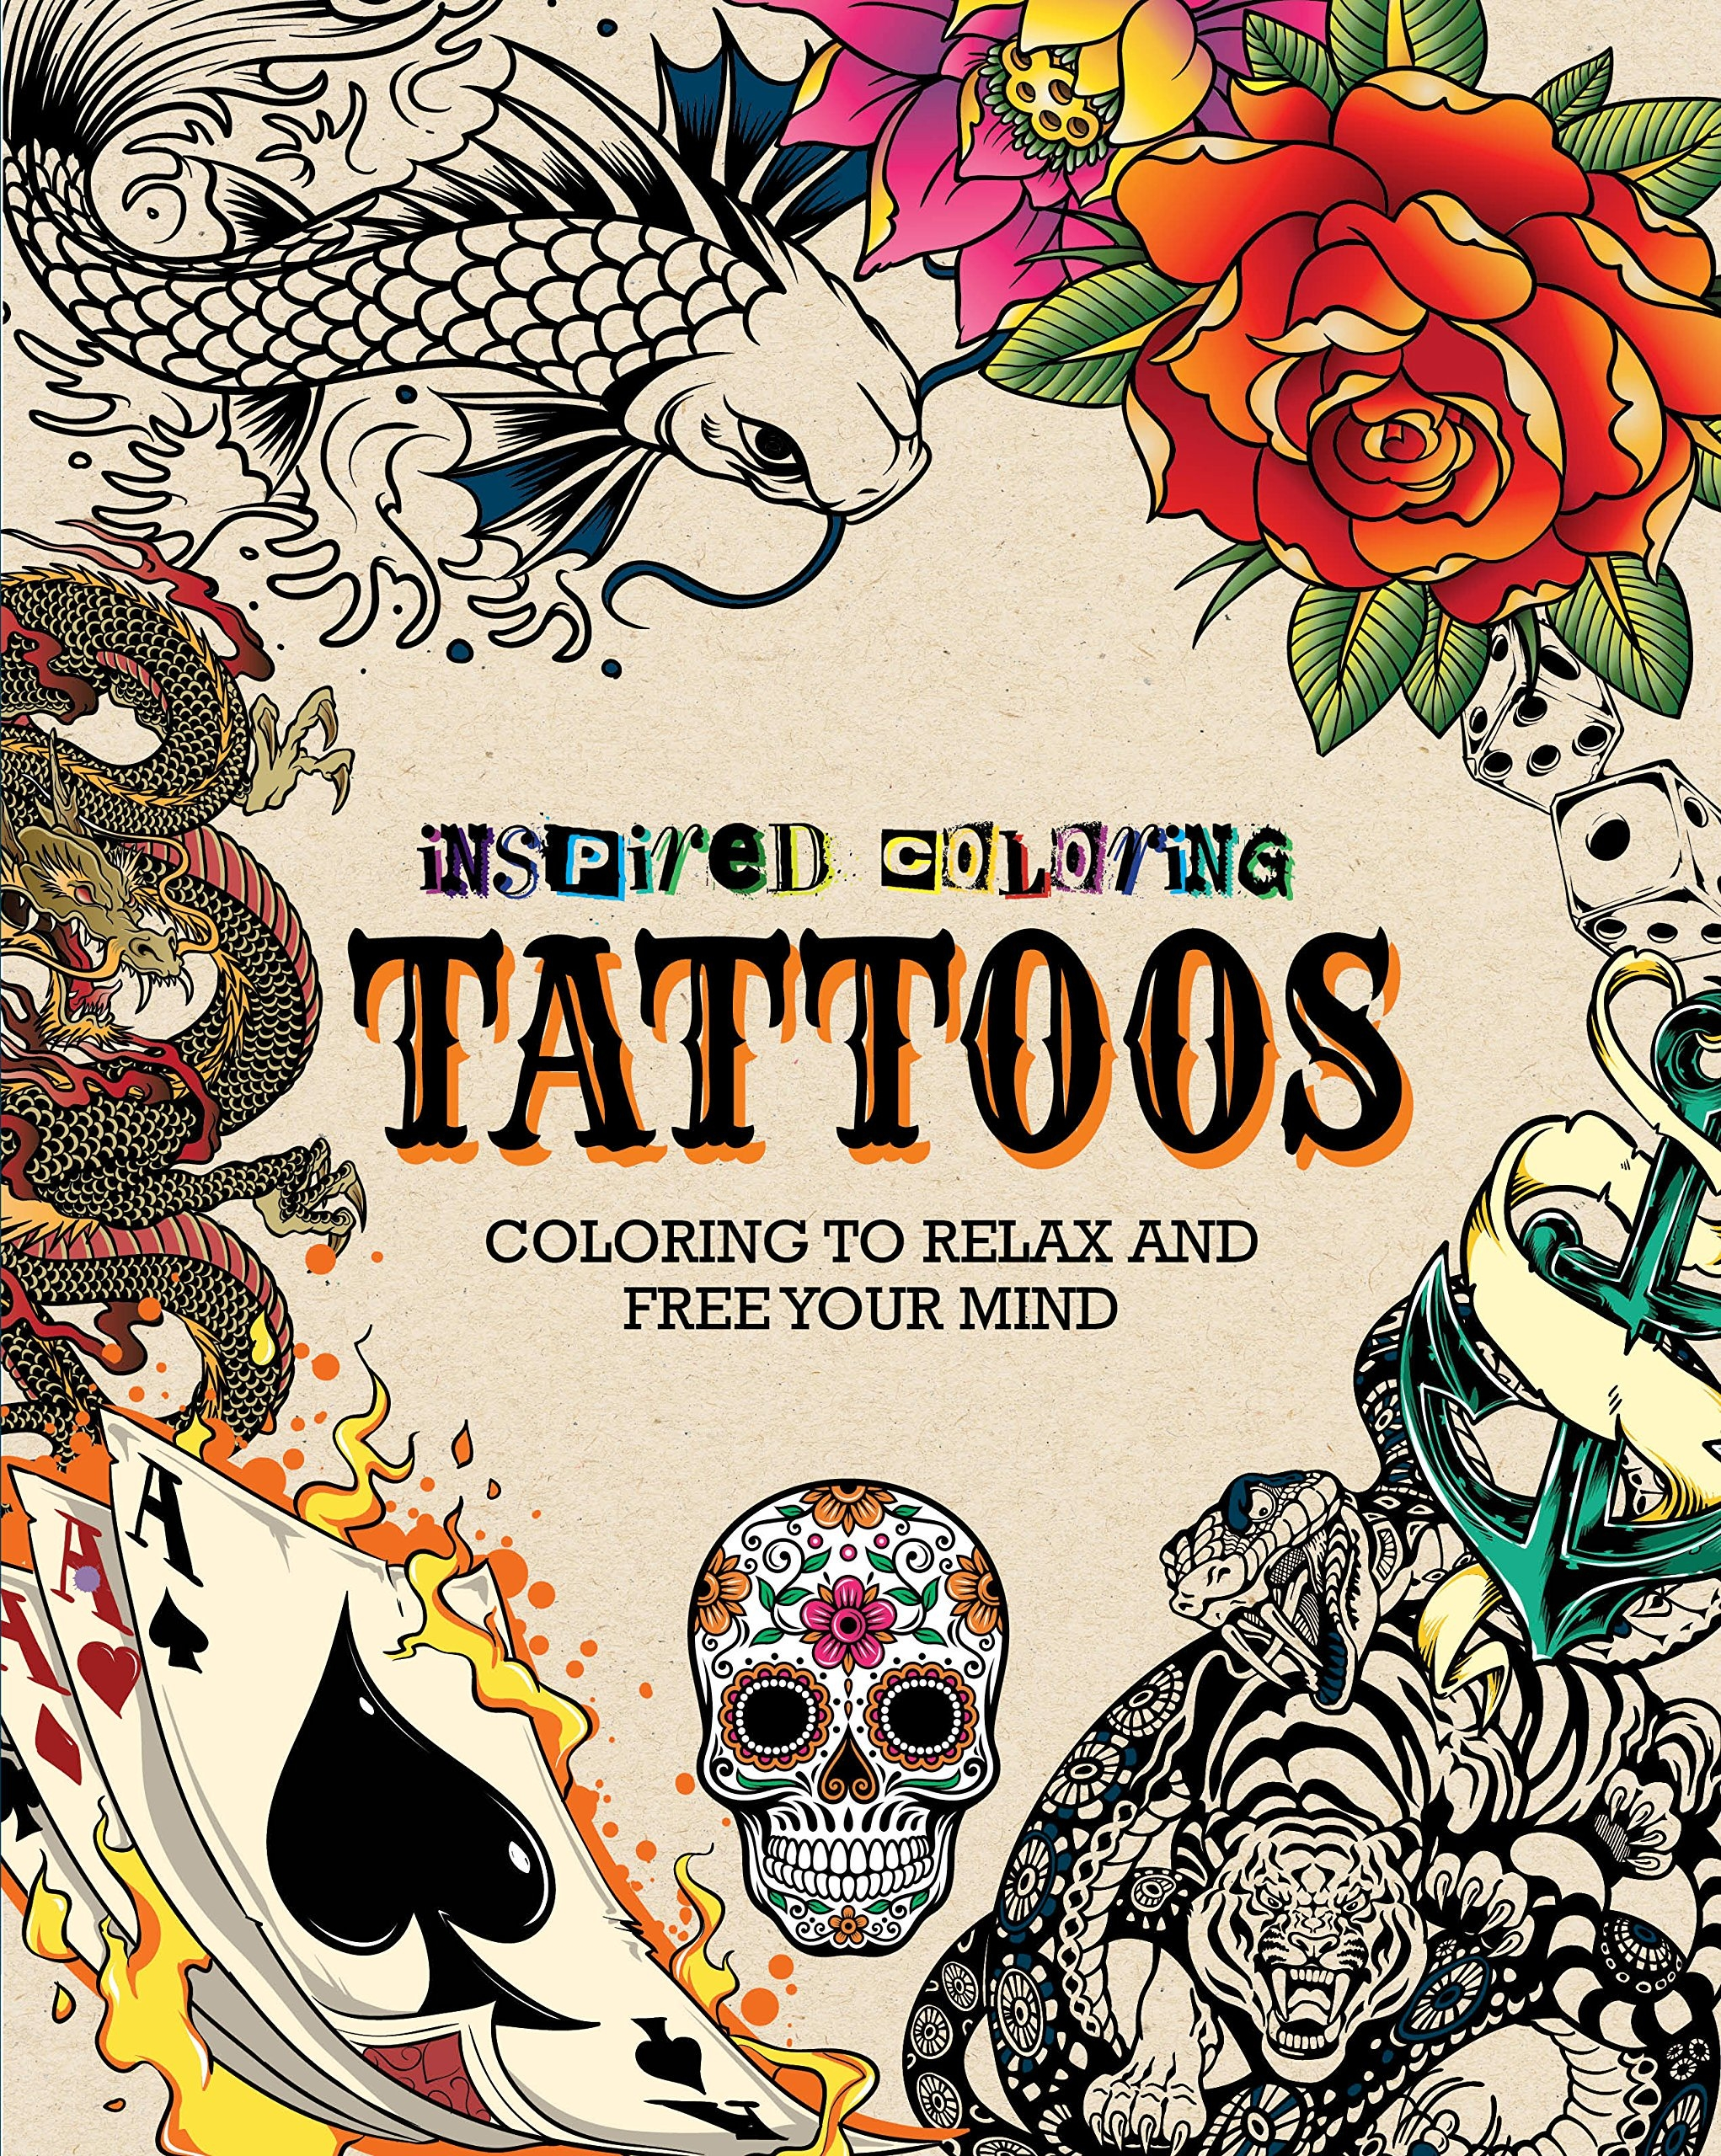 grown up coloring pages - 21 adult coloring books thatll make all your work stress melt away